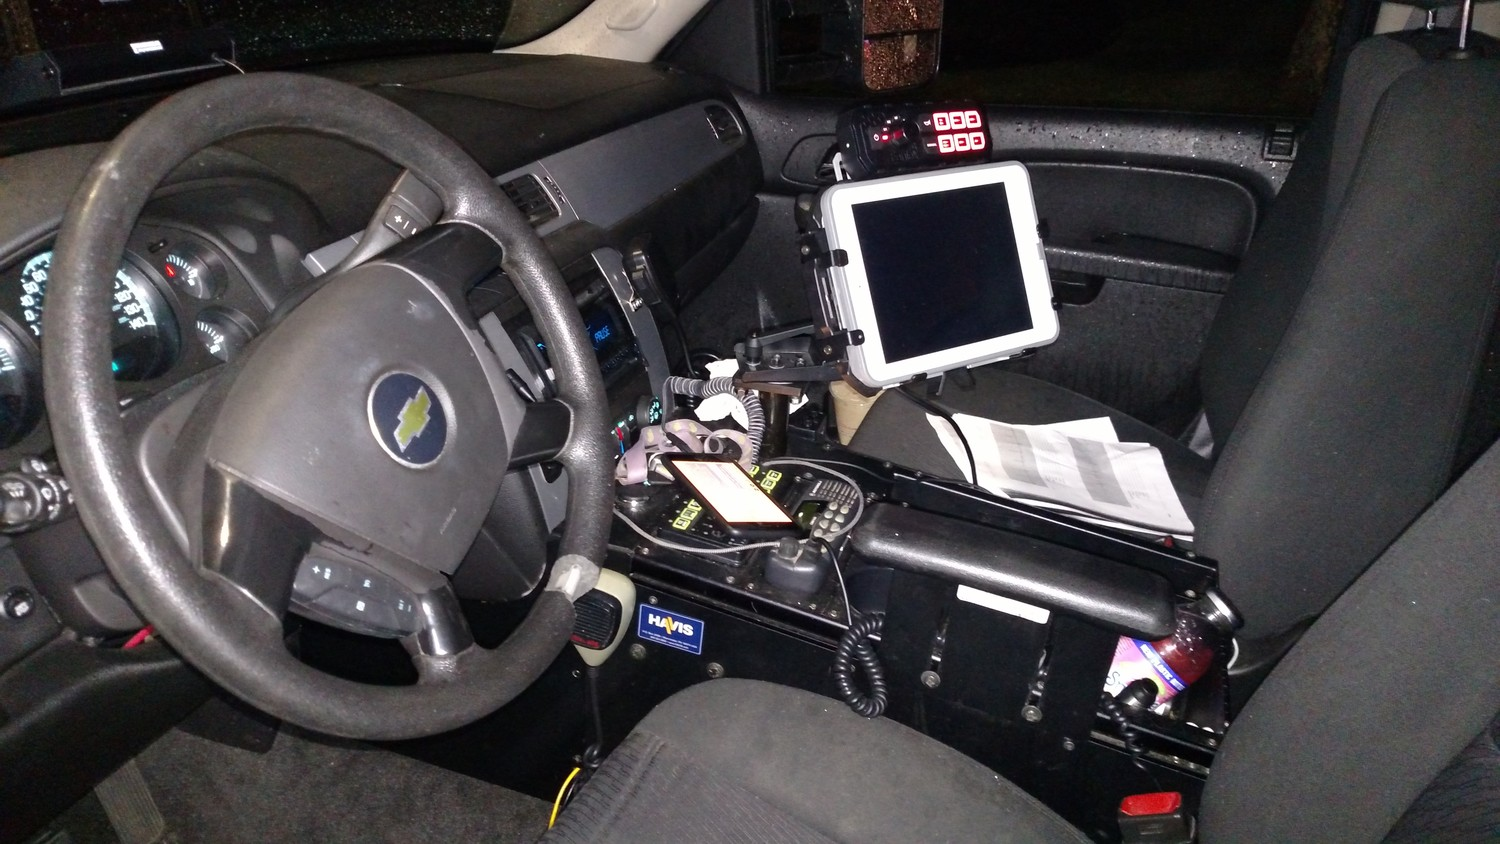 On March 12, Decter was stopped in Seaford while driving his Chevy Tahoe. This was what the interior of his vehicle looked like.